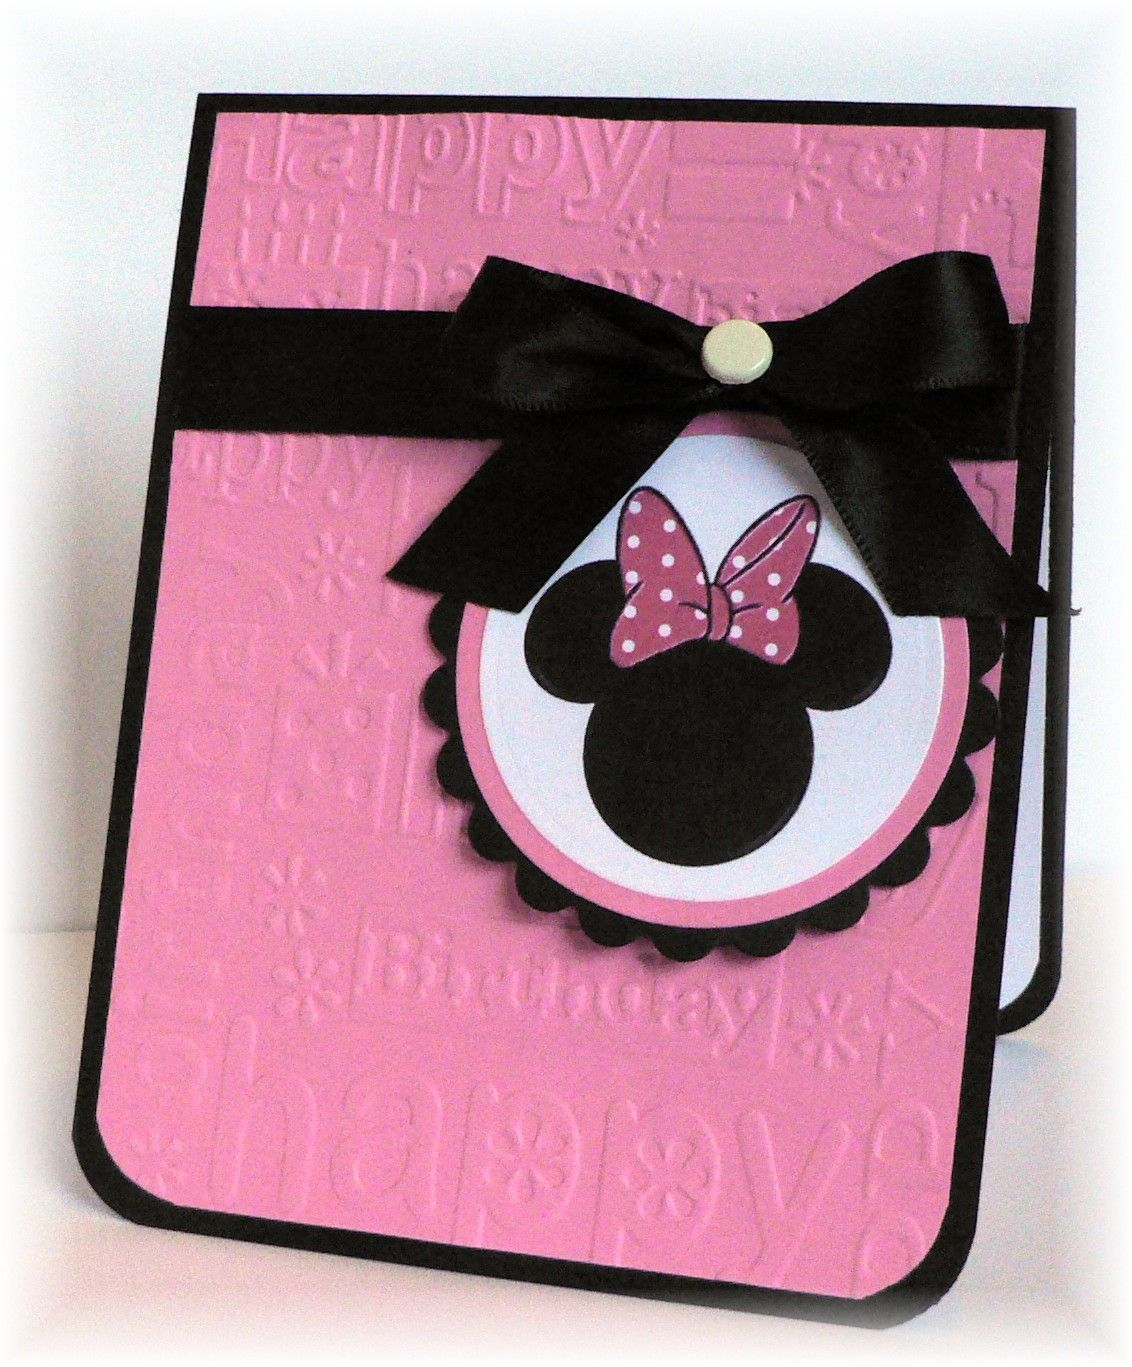 The Challenge Week Before Last Over At Card Swaps On The Cardmaker Site Was To Make A Card That Was Disney I Birthday Cards Diy Disney Cards Birthday Cards